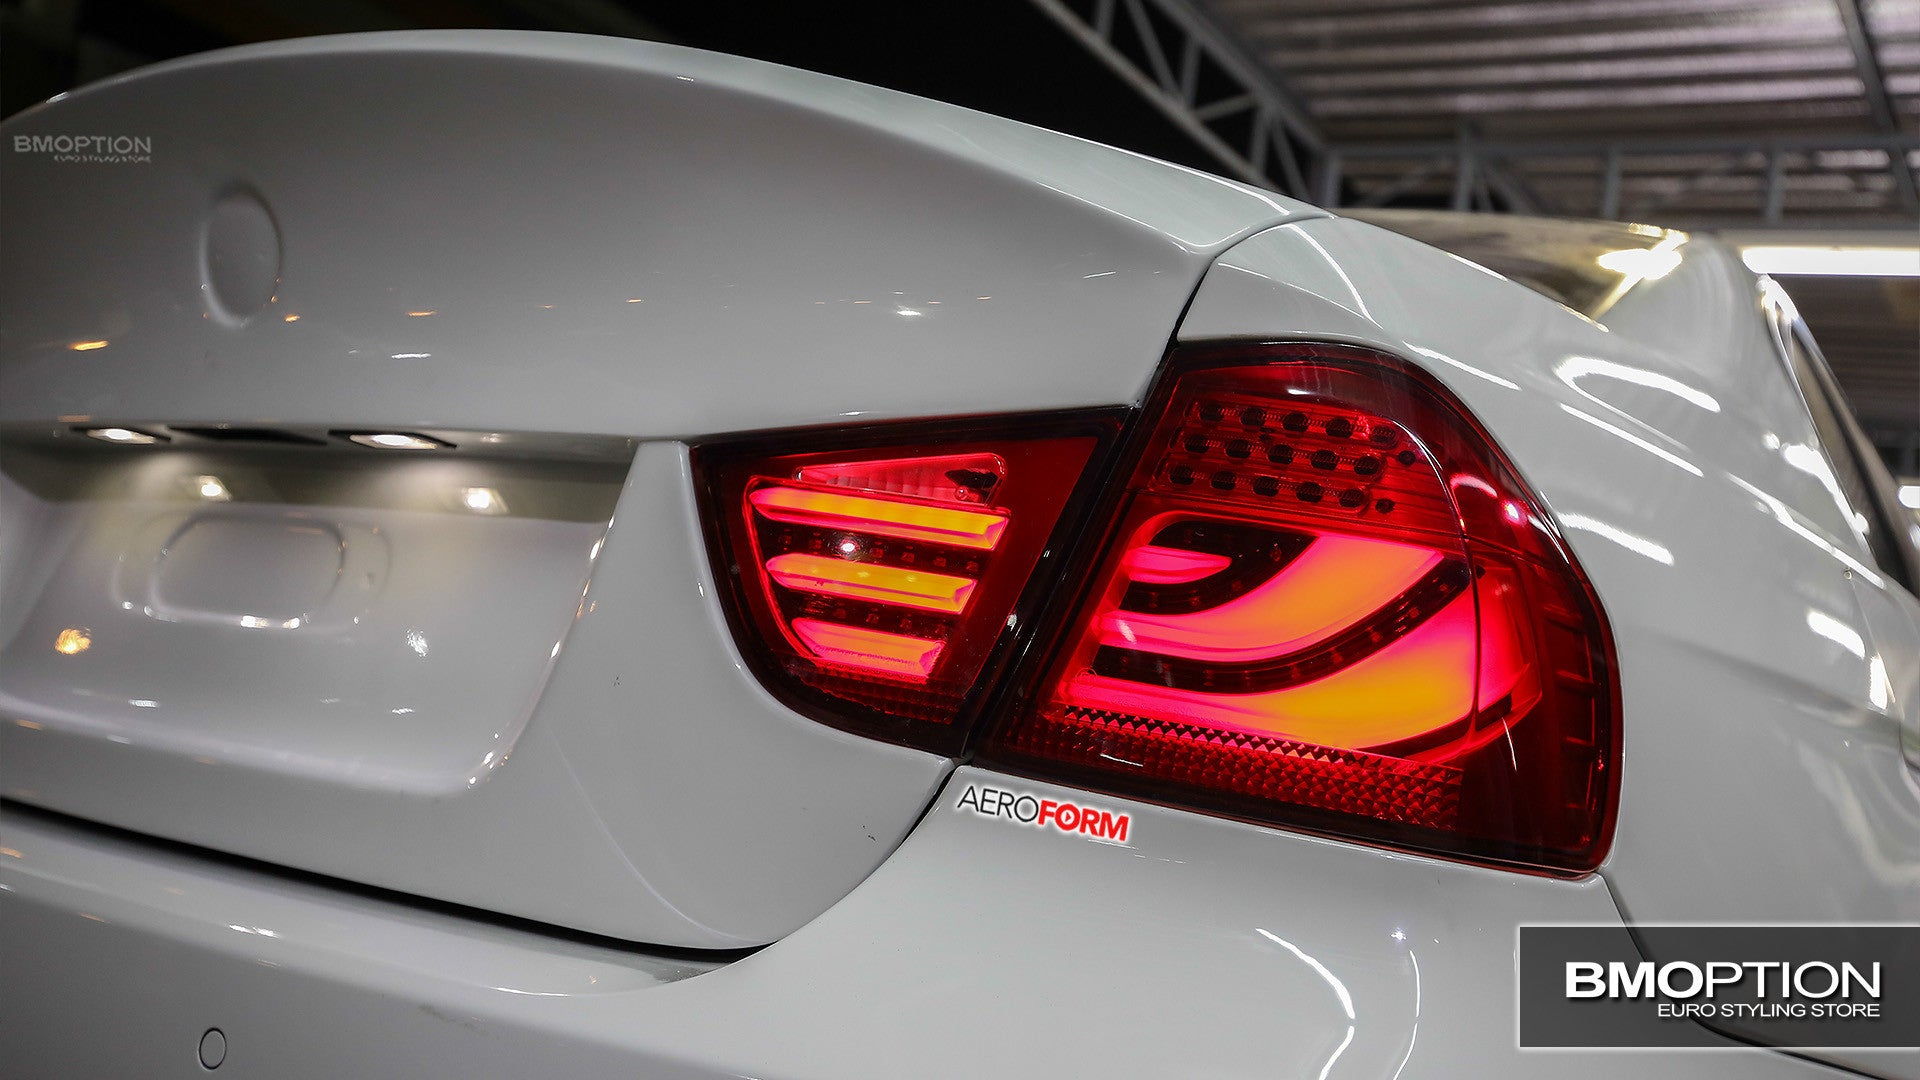 Bmw Series E Rear Bumper Sensor Type Oem furthermore Bmw E Series Eagle Eyes Red Smoke Lens Cgi Led Light Bar Tail L  Tl Bmw besides D What Do You Guy Think These Lci Tail Lights Img likewise Image as well D How Open Tailgate Window No Power Rear Window Lock E. on 2009 bmw e60 tail lights